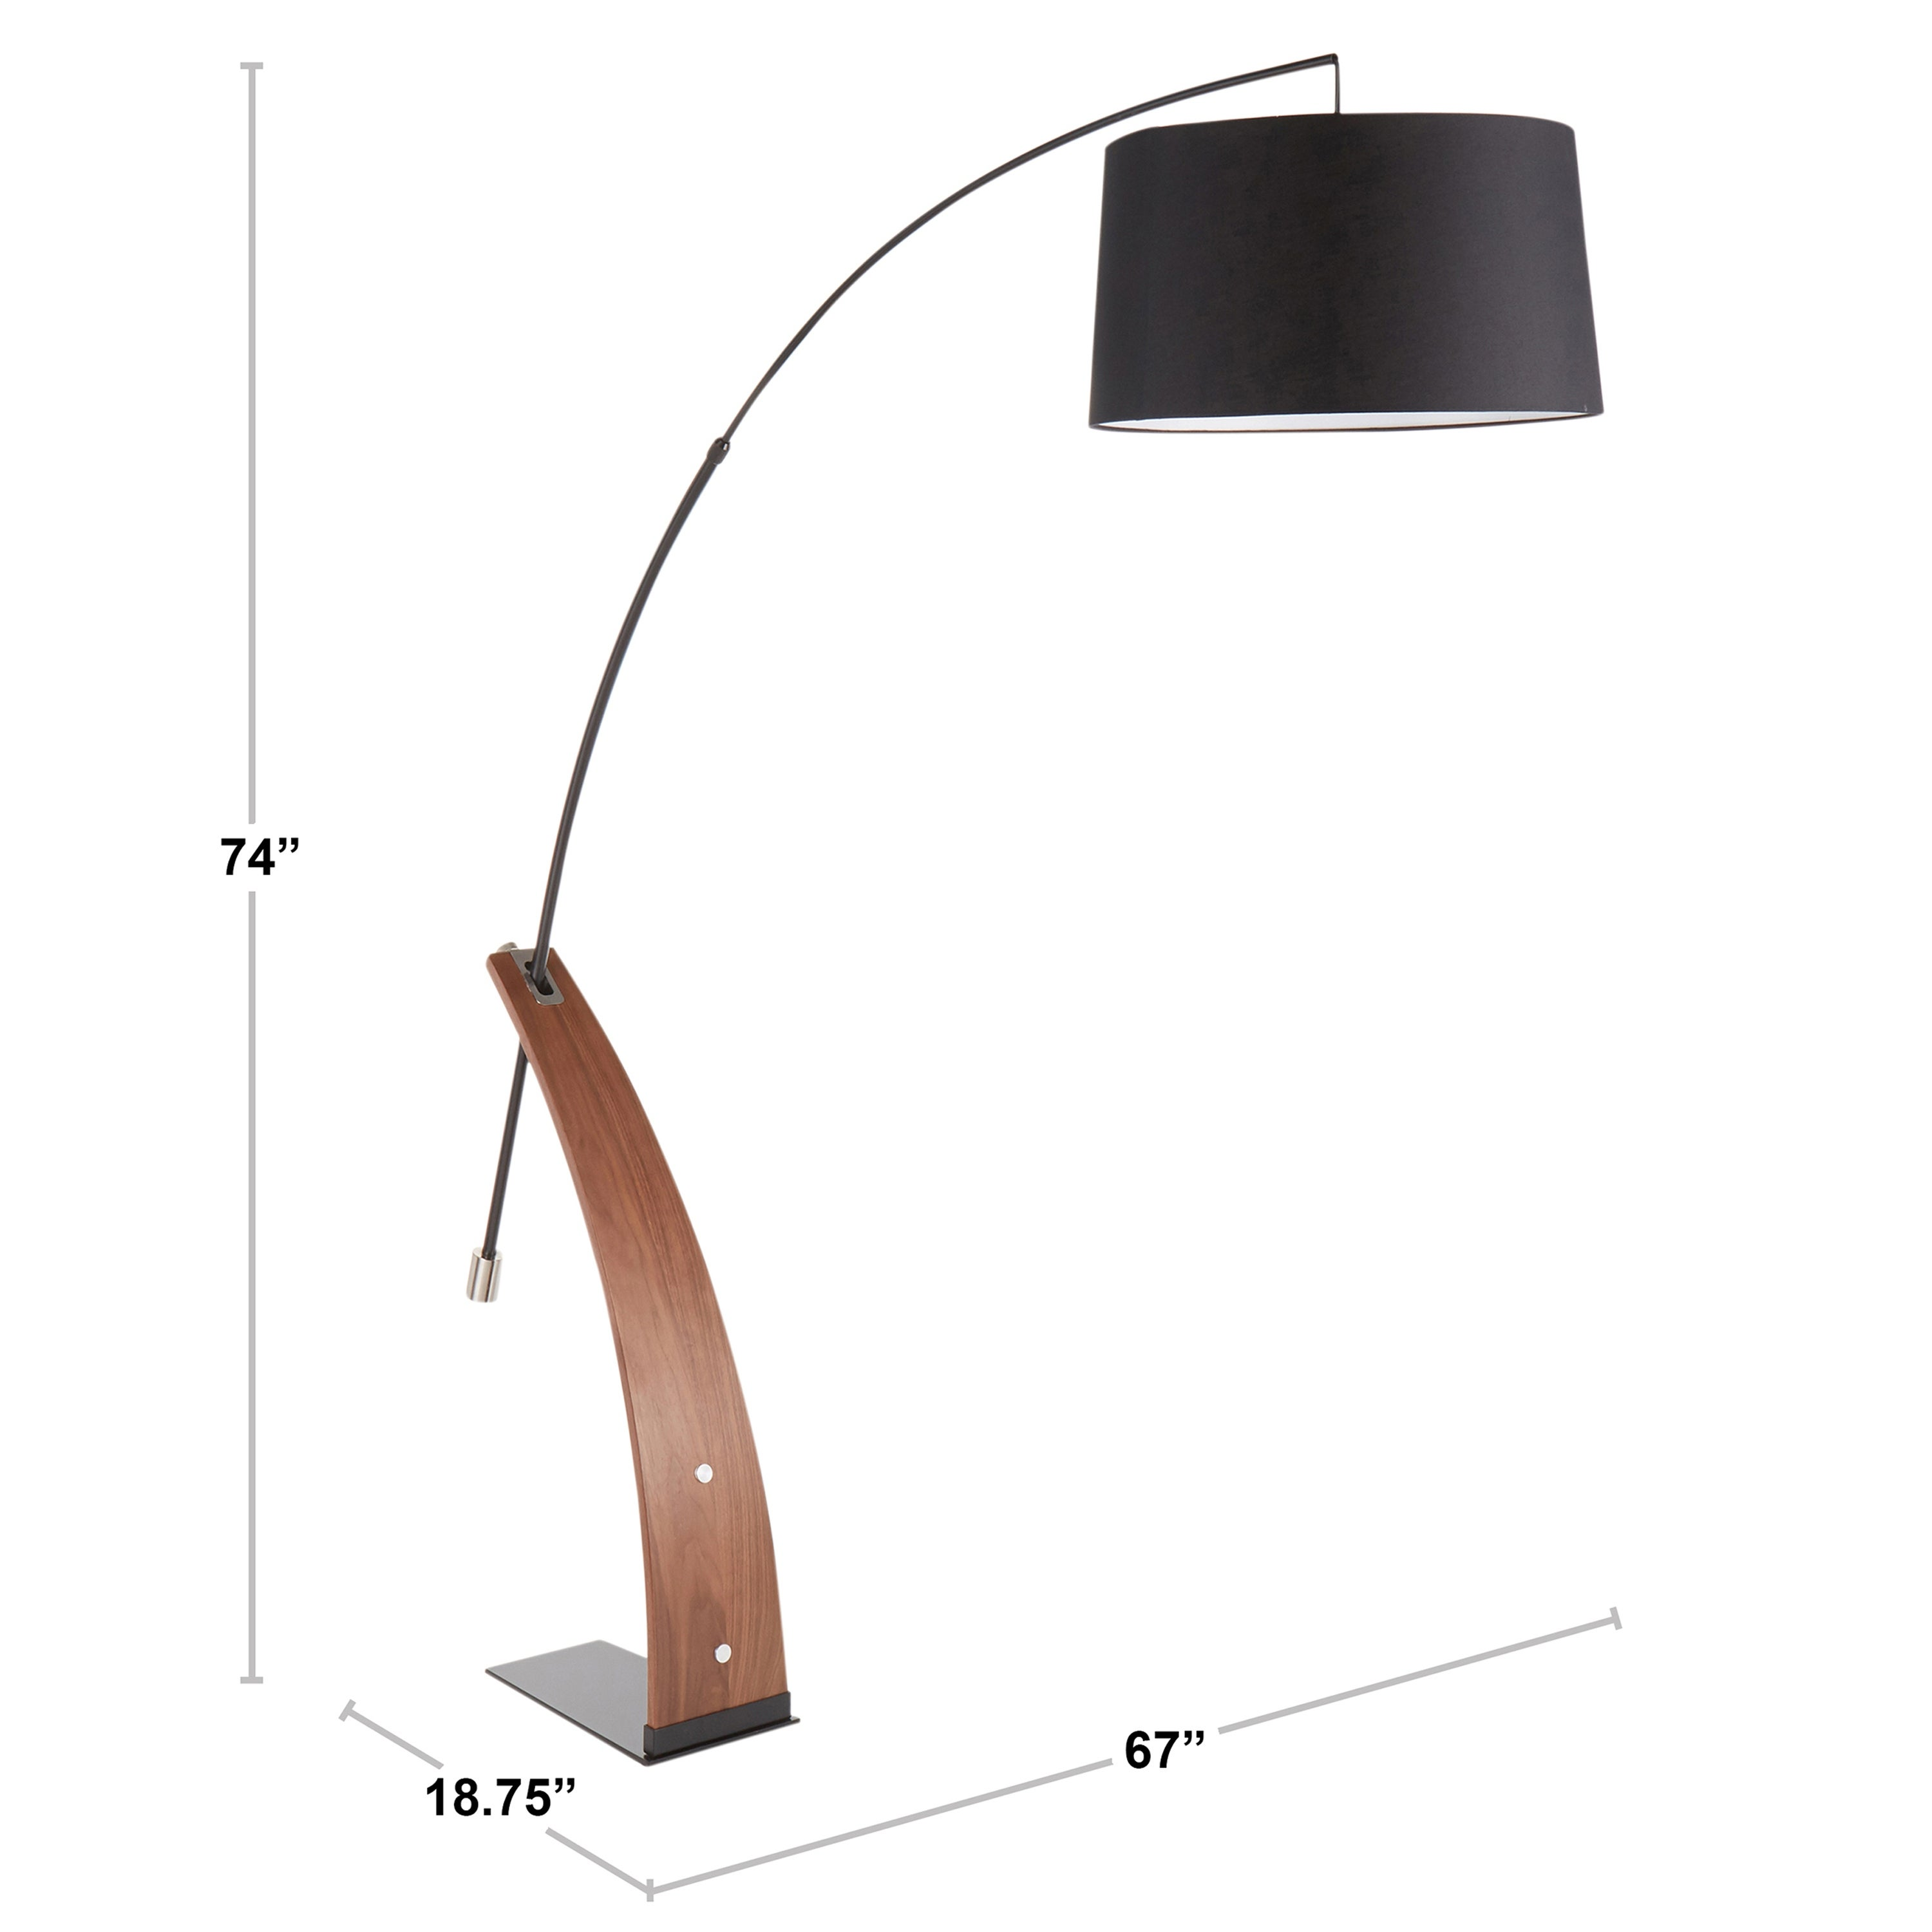 Shop Black Friday Deals On Robyn Mid Century Modern Floor Lamp N A Overstock 29197012